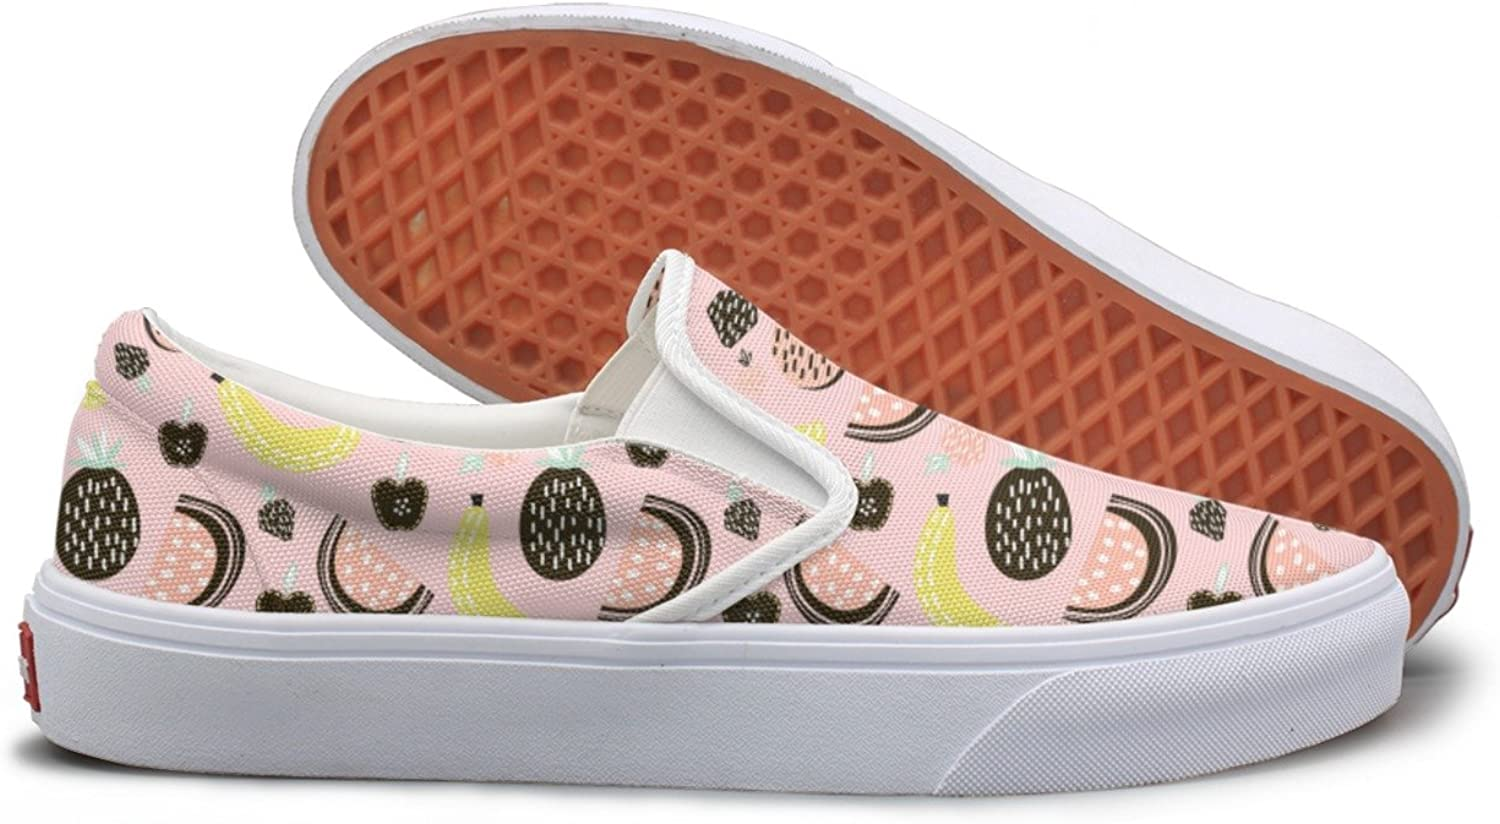 SEERTED Best Fruits to Eat Great for Kids Canvas Slip On shoes for Women